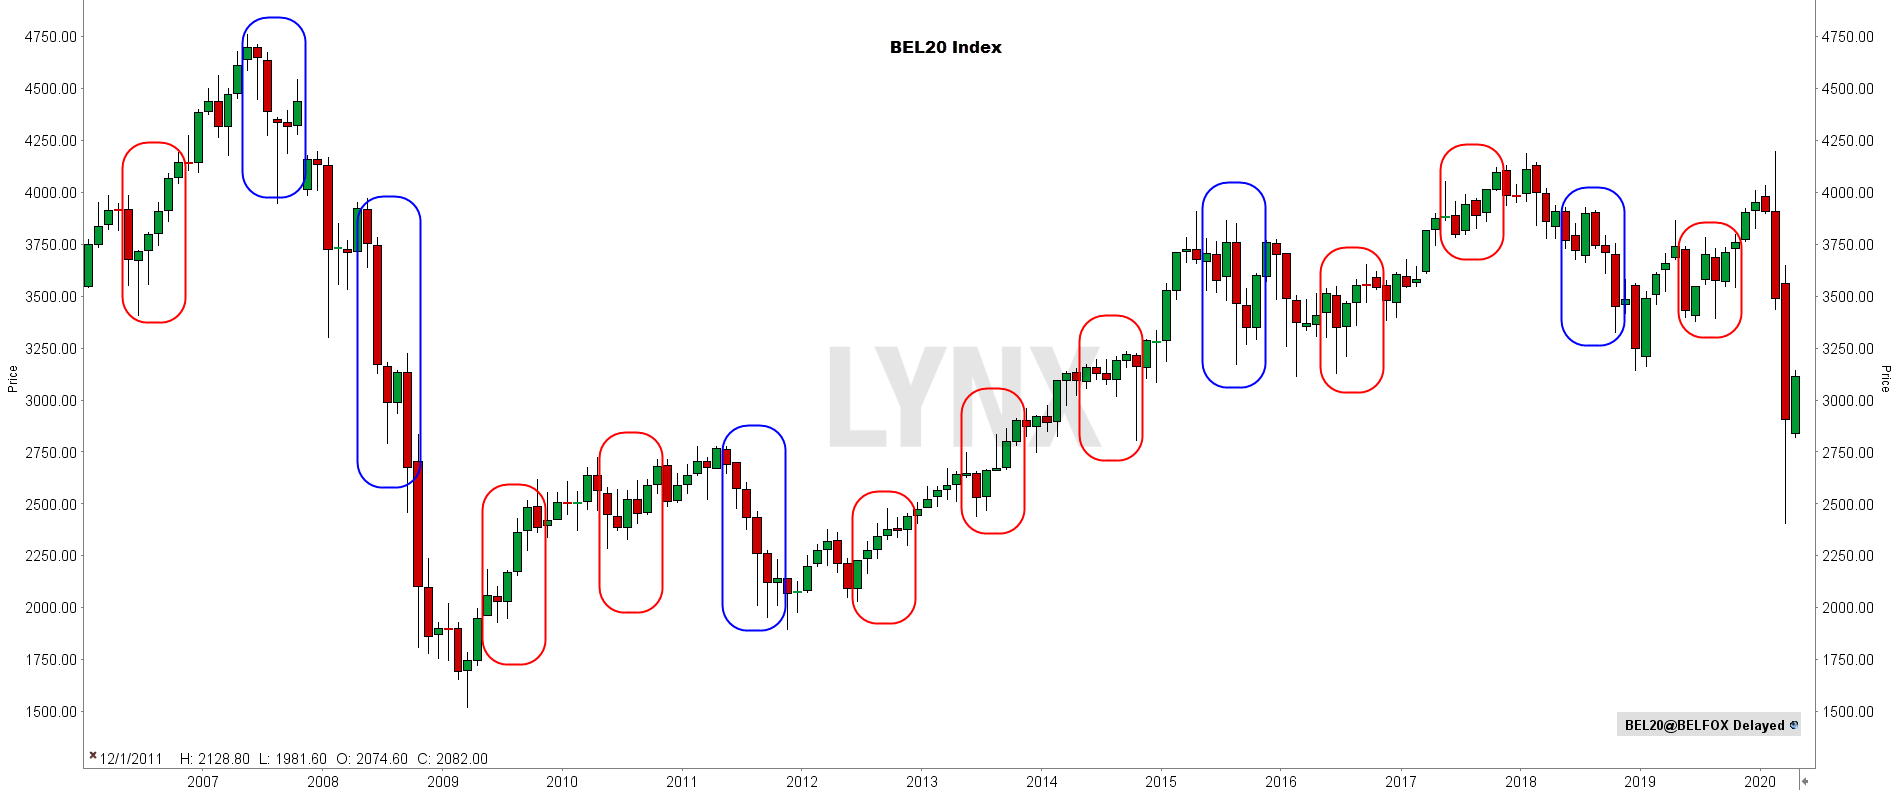 sell in may bel20